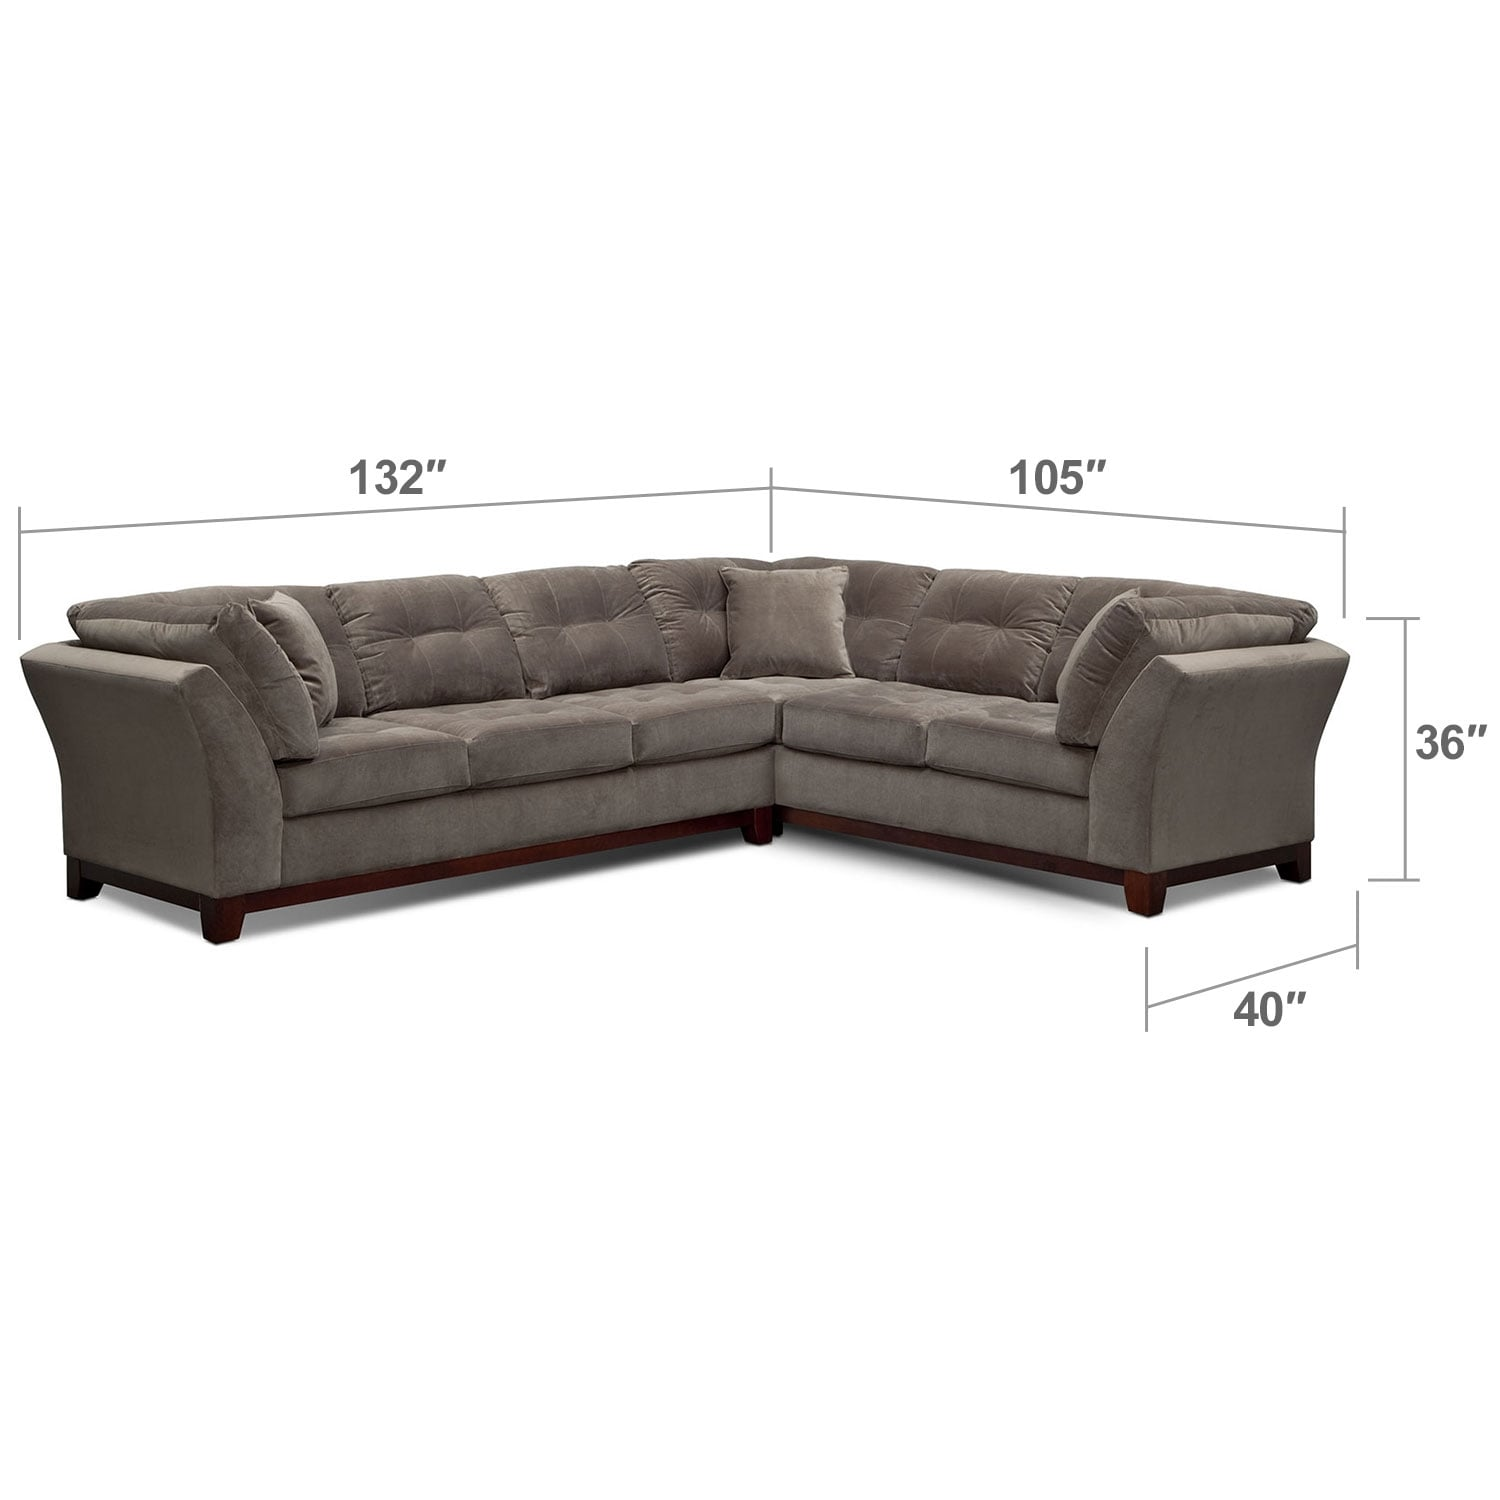 Living Room Furniture - Solace Gray II 2 Pc. Sectional (Reverse)